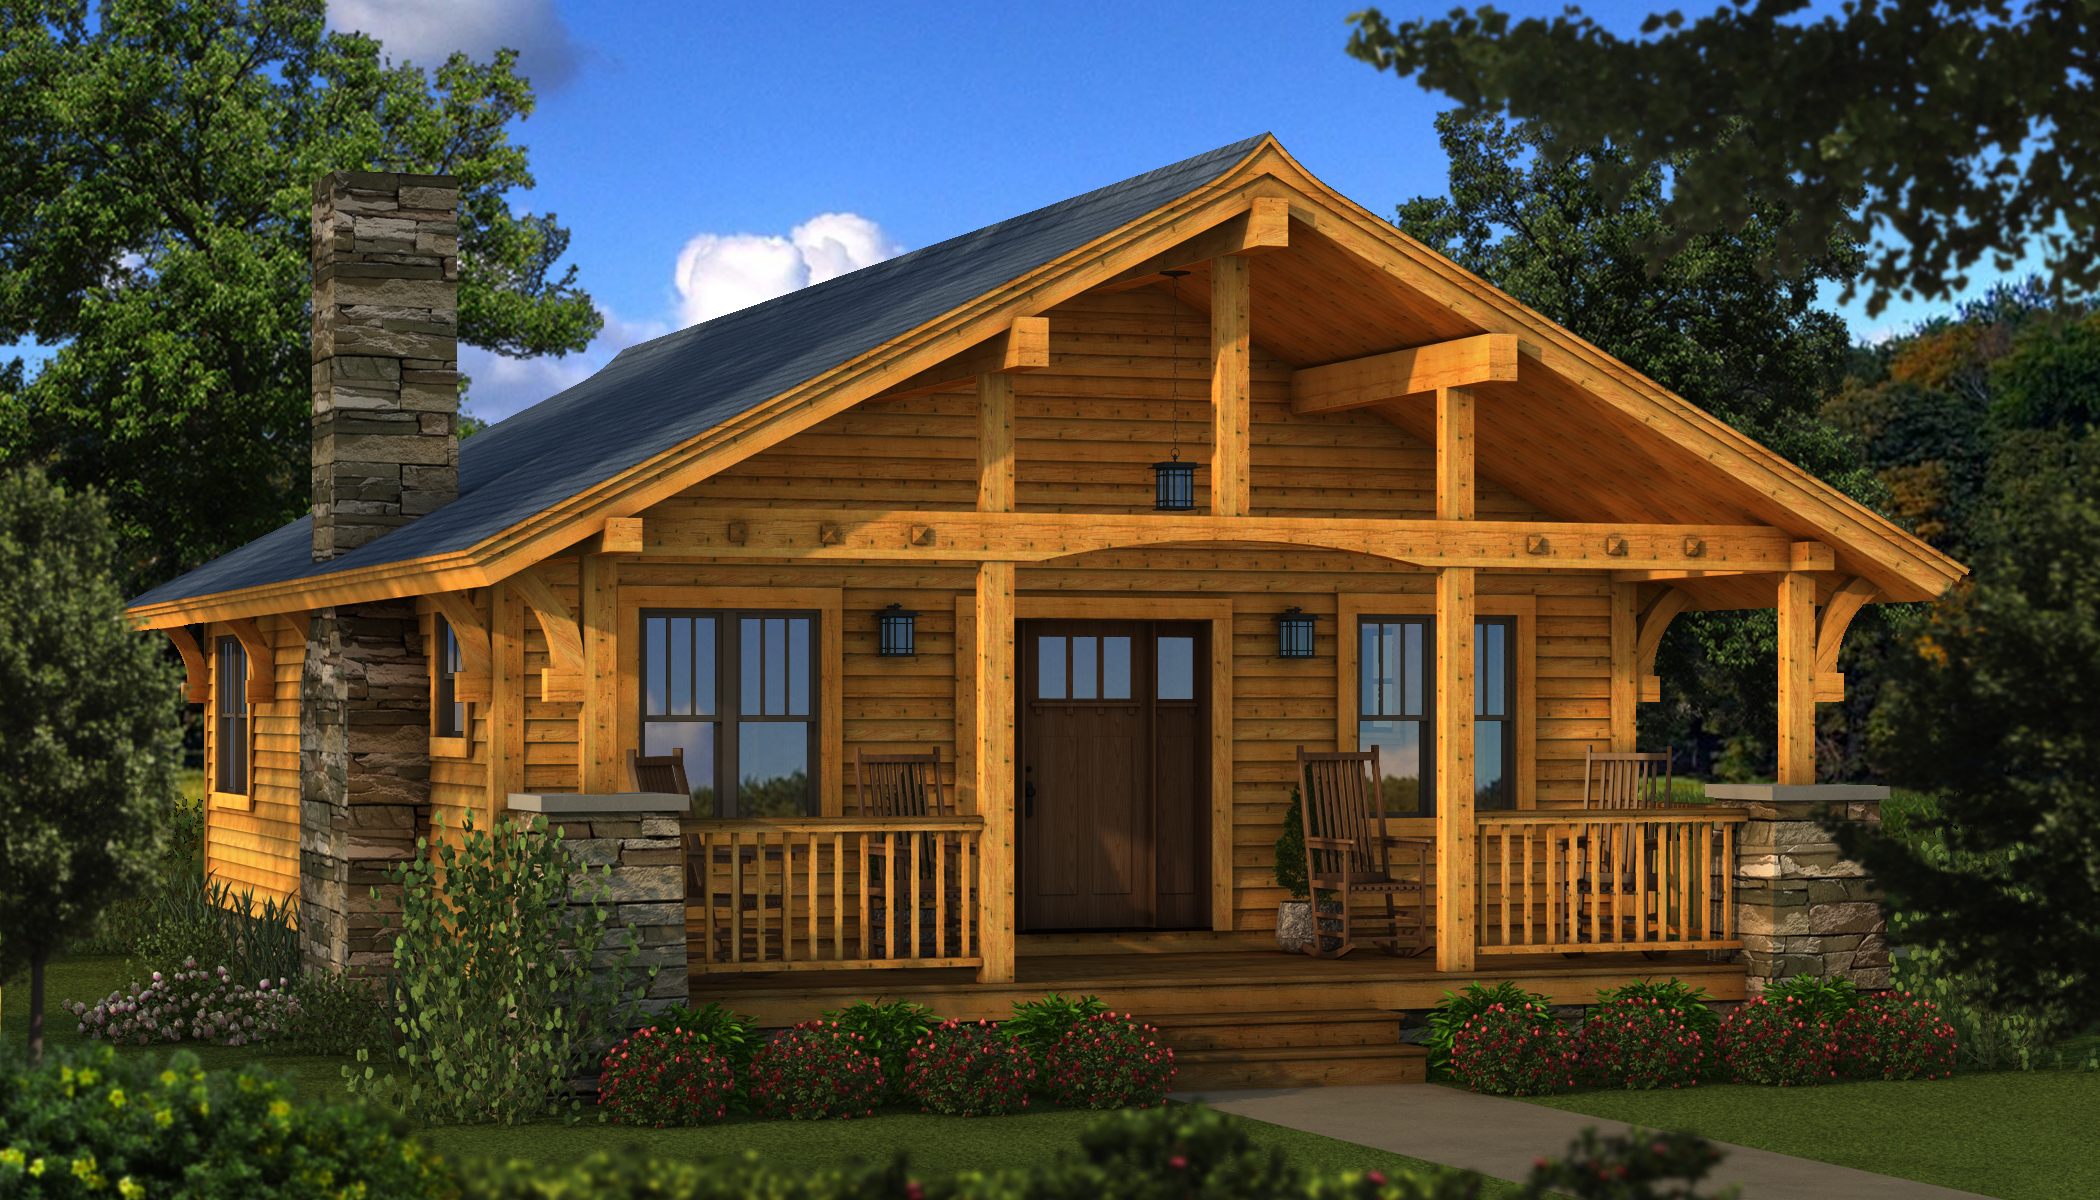 Bungalow 2 Plans Amp Information Southland Log Homes